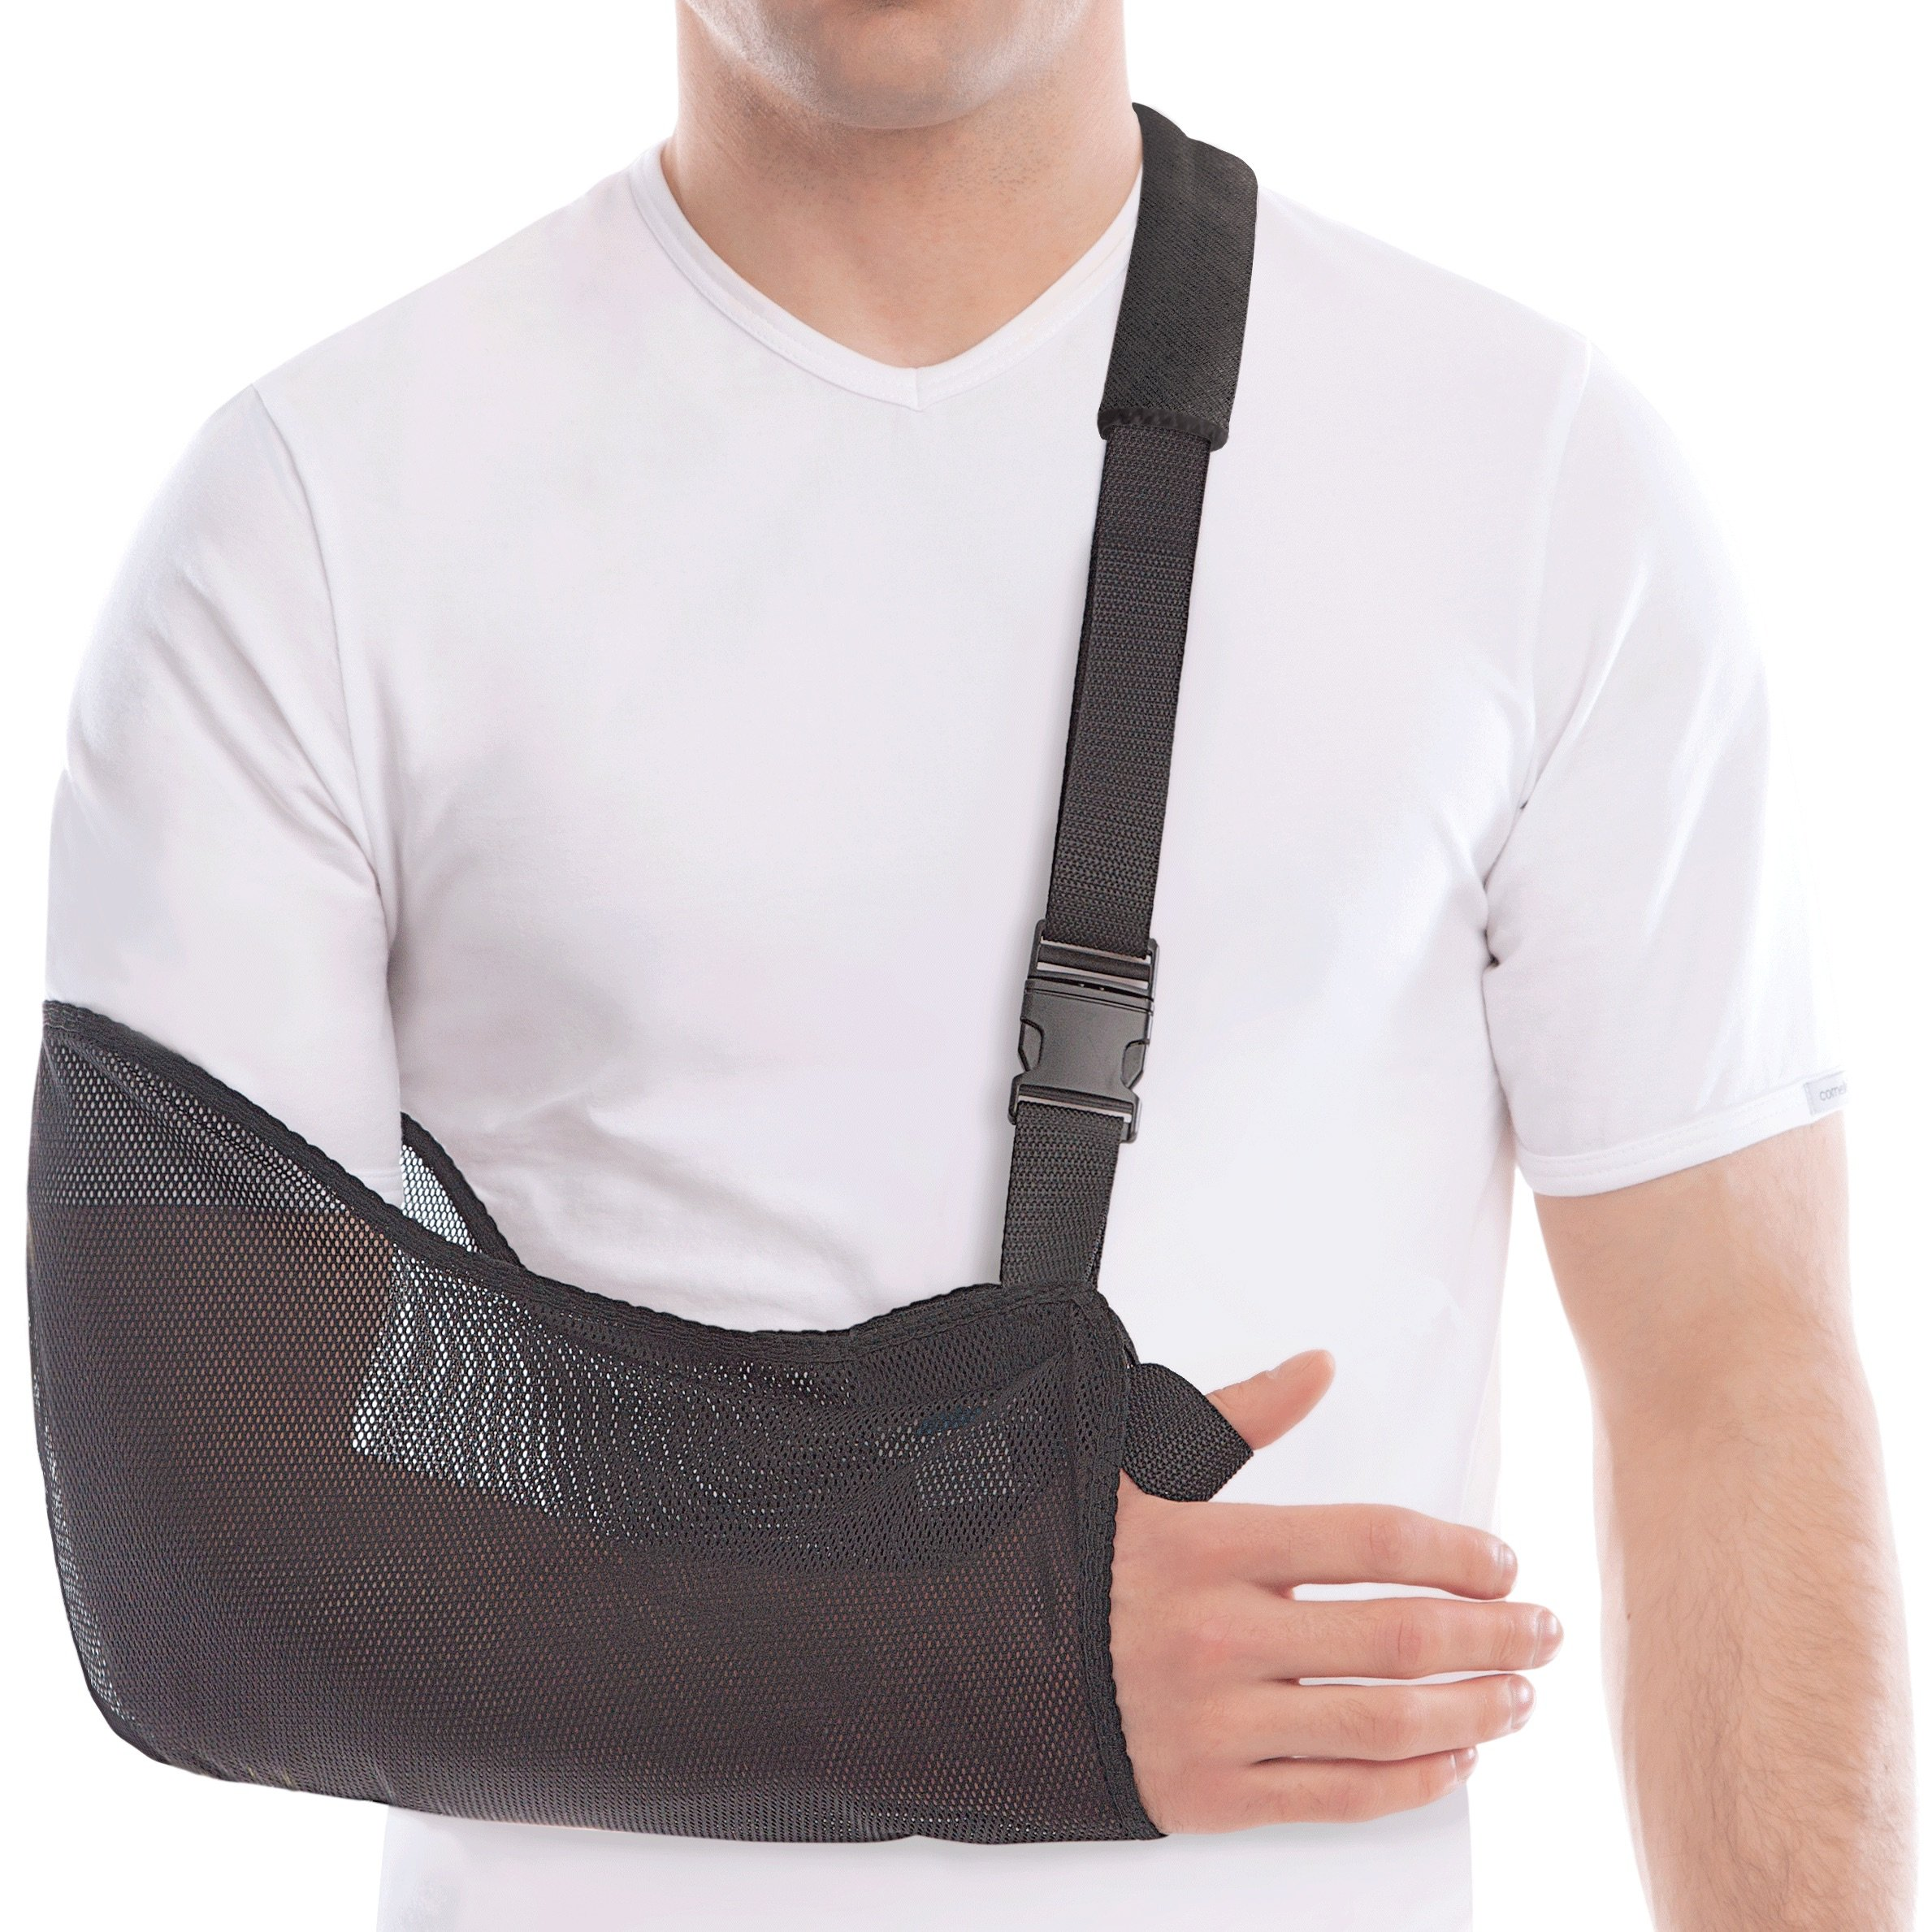 TOROS-GROUP Arm & Shoulder Support Sling - Breathable Mesh - Lightweight - Child/X-Small, Forearm 8''-11'' Black